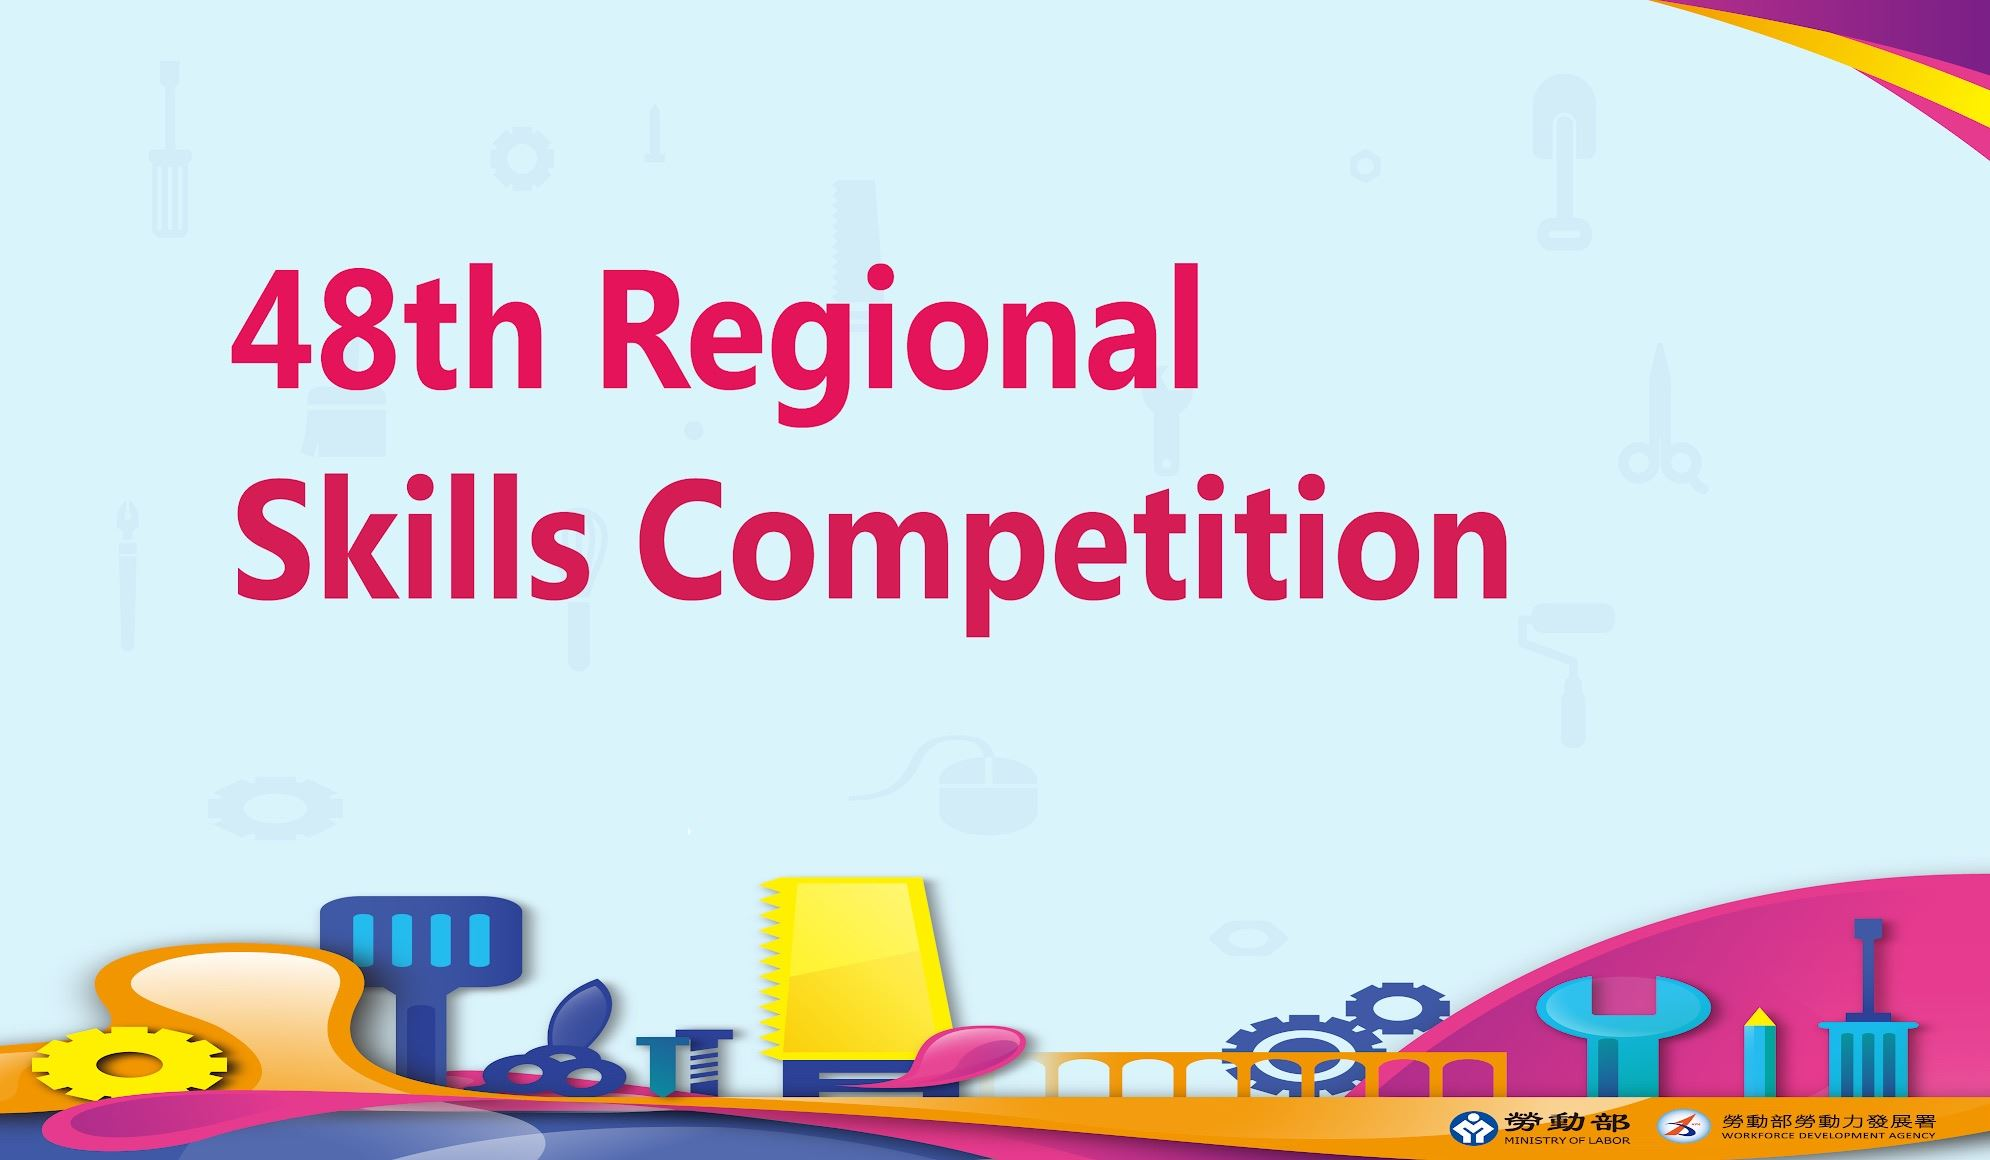 48th Regional Skills Competition wrapped up on April 28